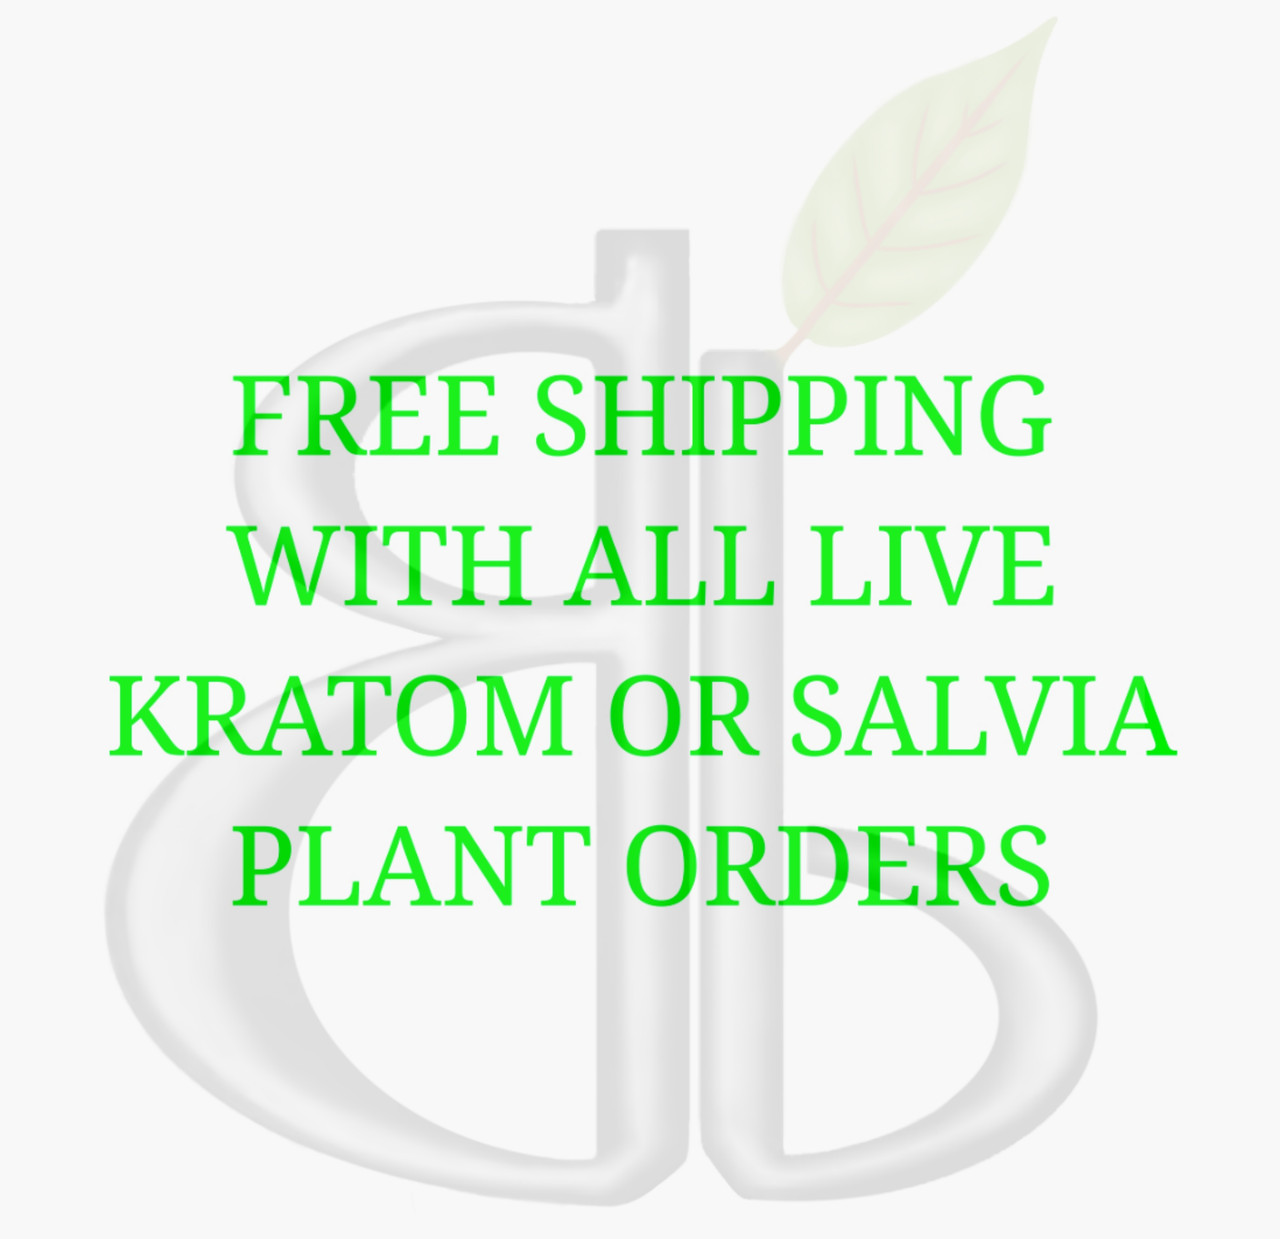 Free shipping on all live kratom or salvia plant orders